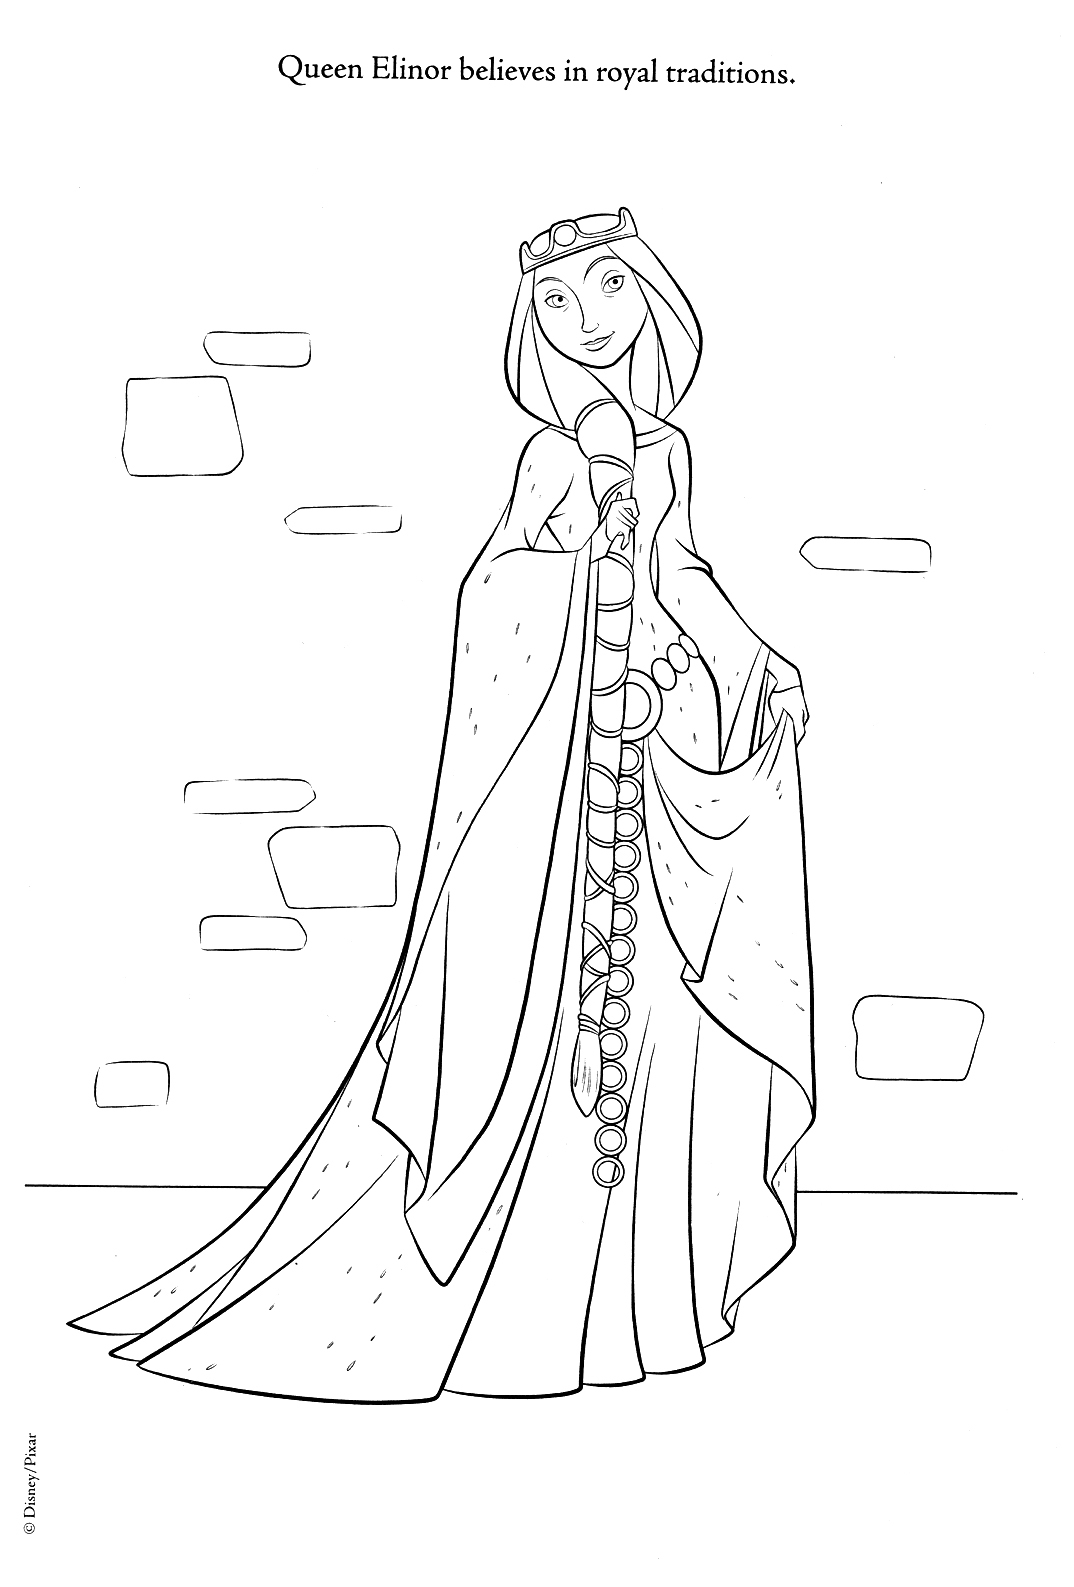 brave coloring pages - brave coloring pages photo